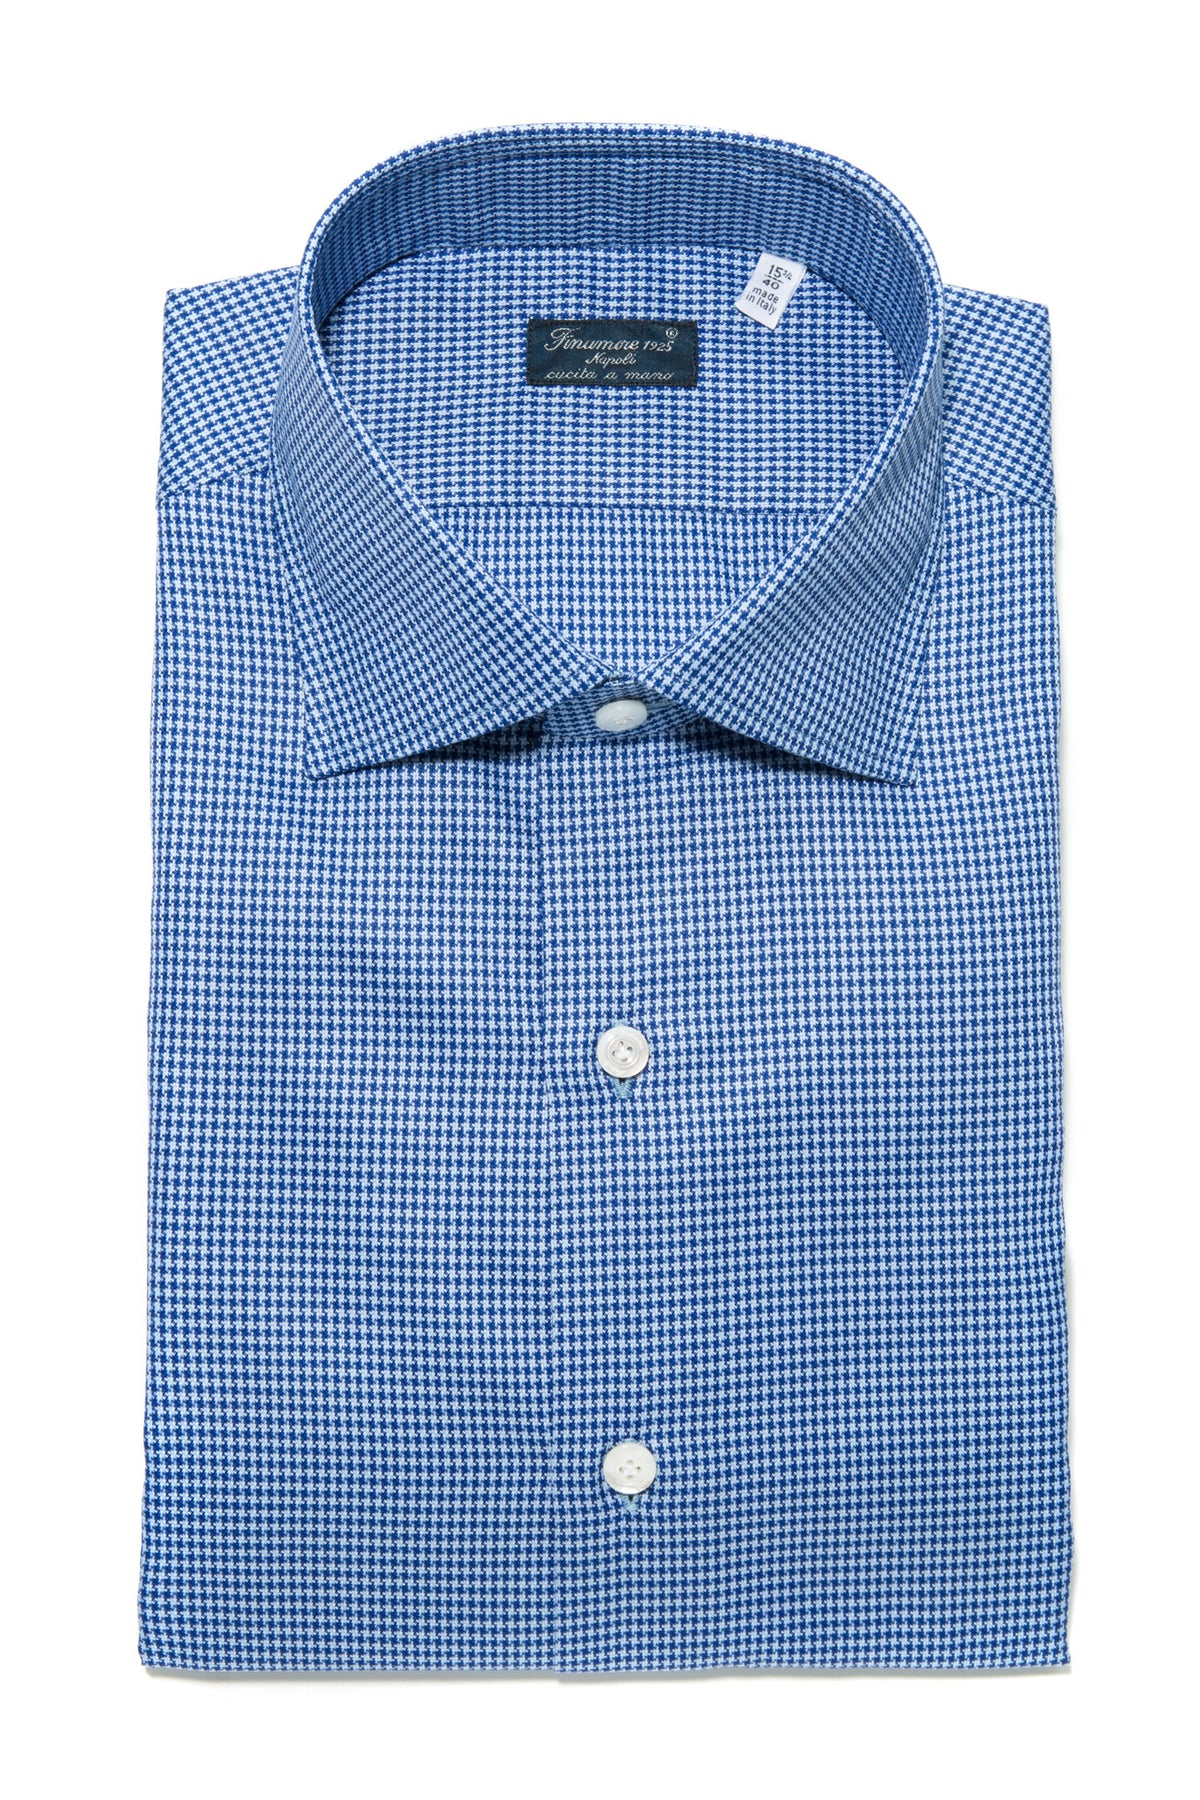 Finamore Andrea Houndstooth Dress Shirt (321128431640)